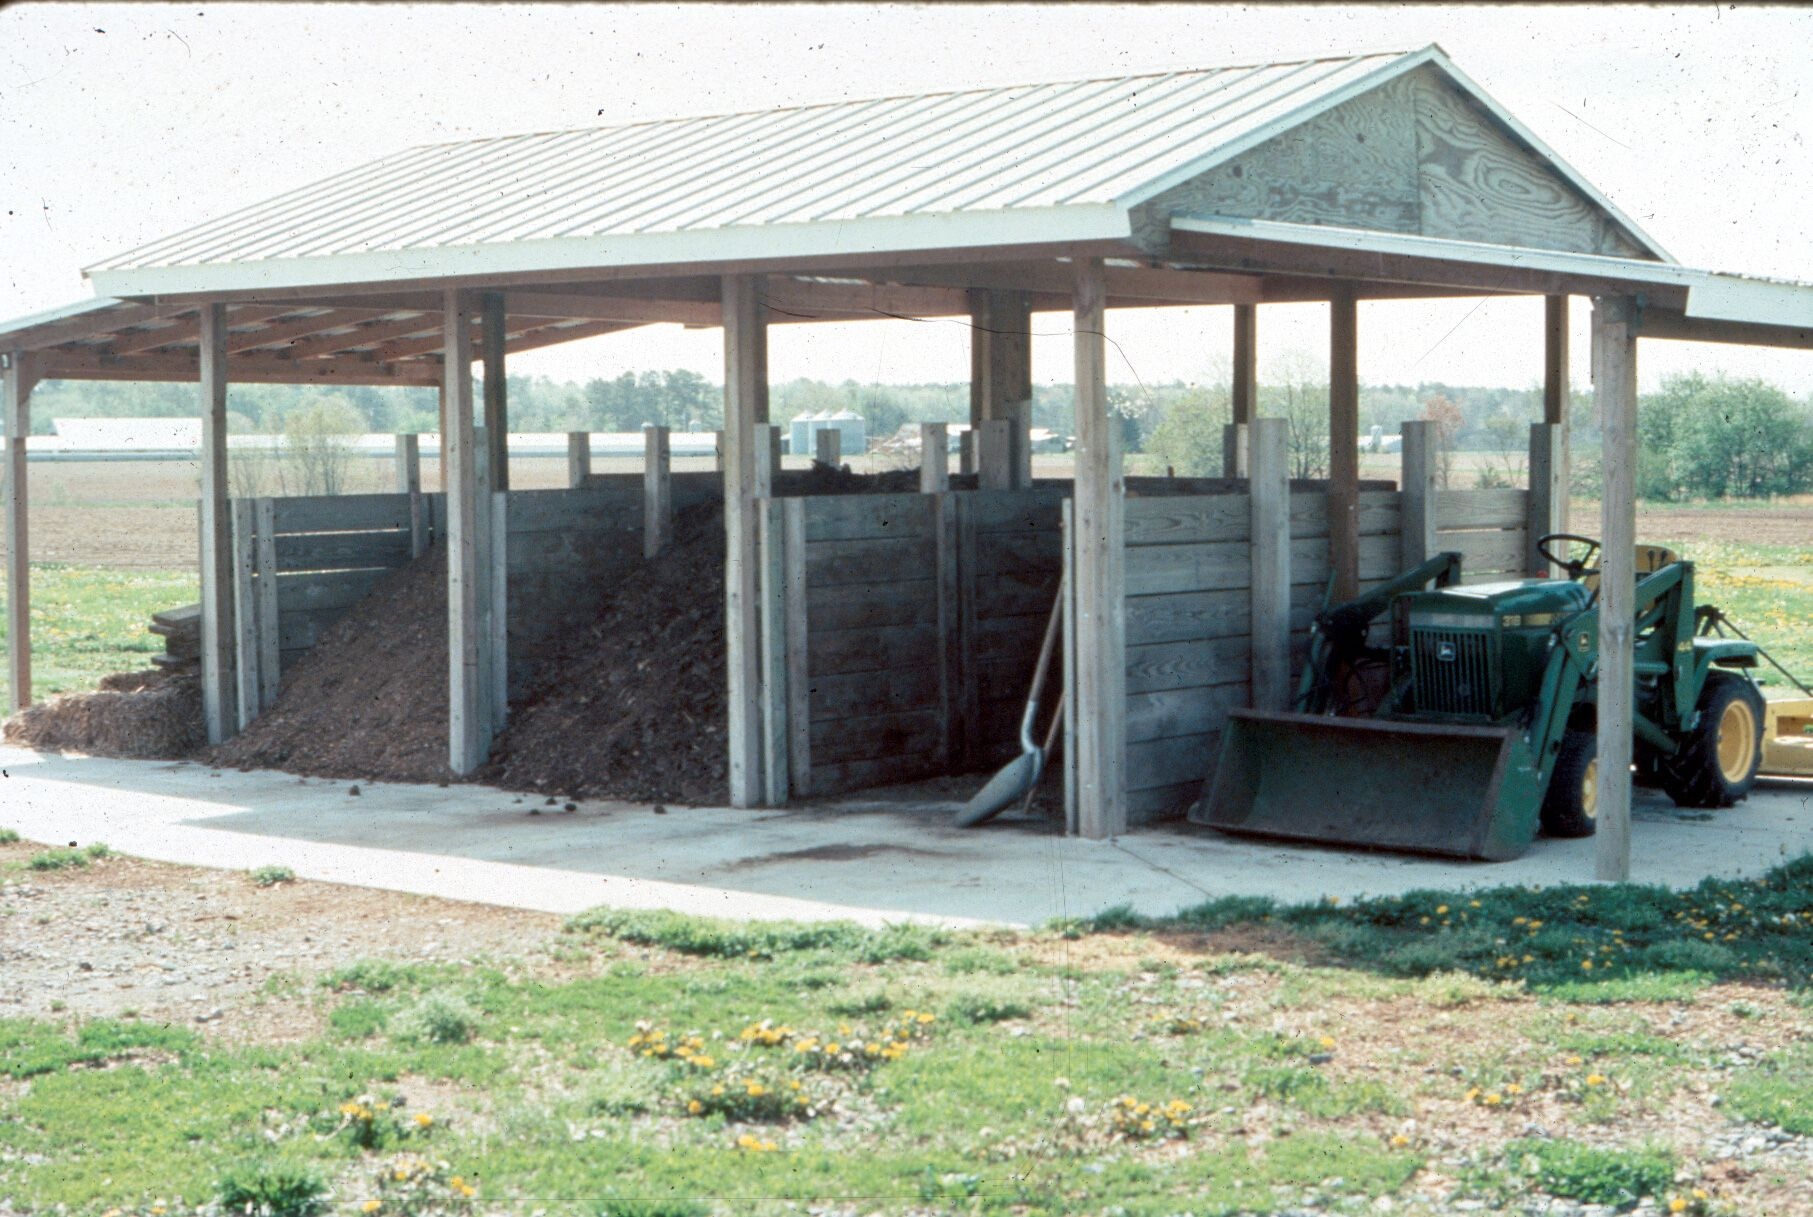 Commercial Poultry Composting Shed Pictures In Covered Bins